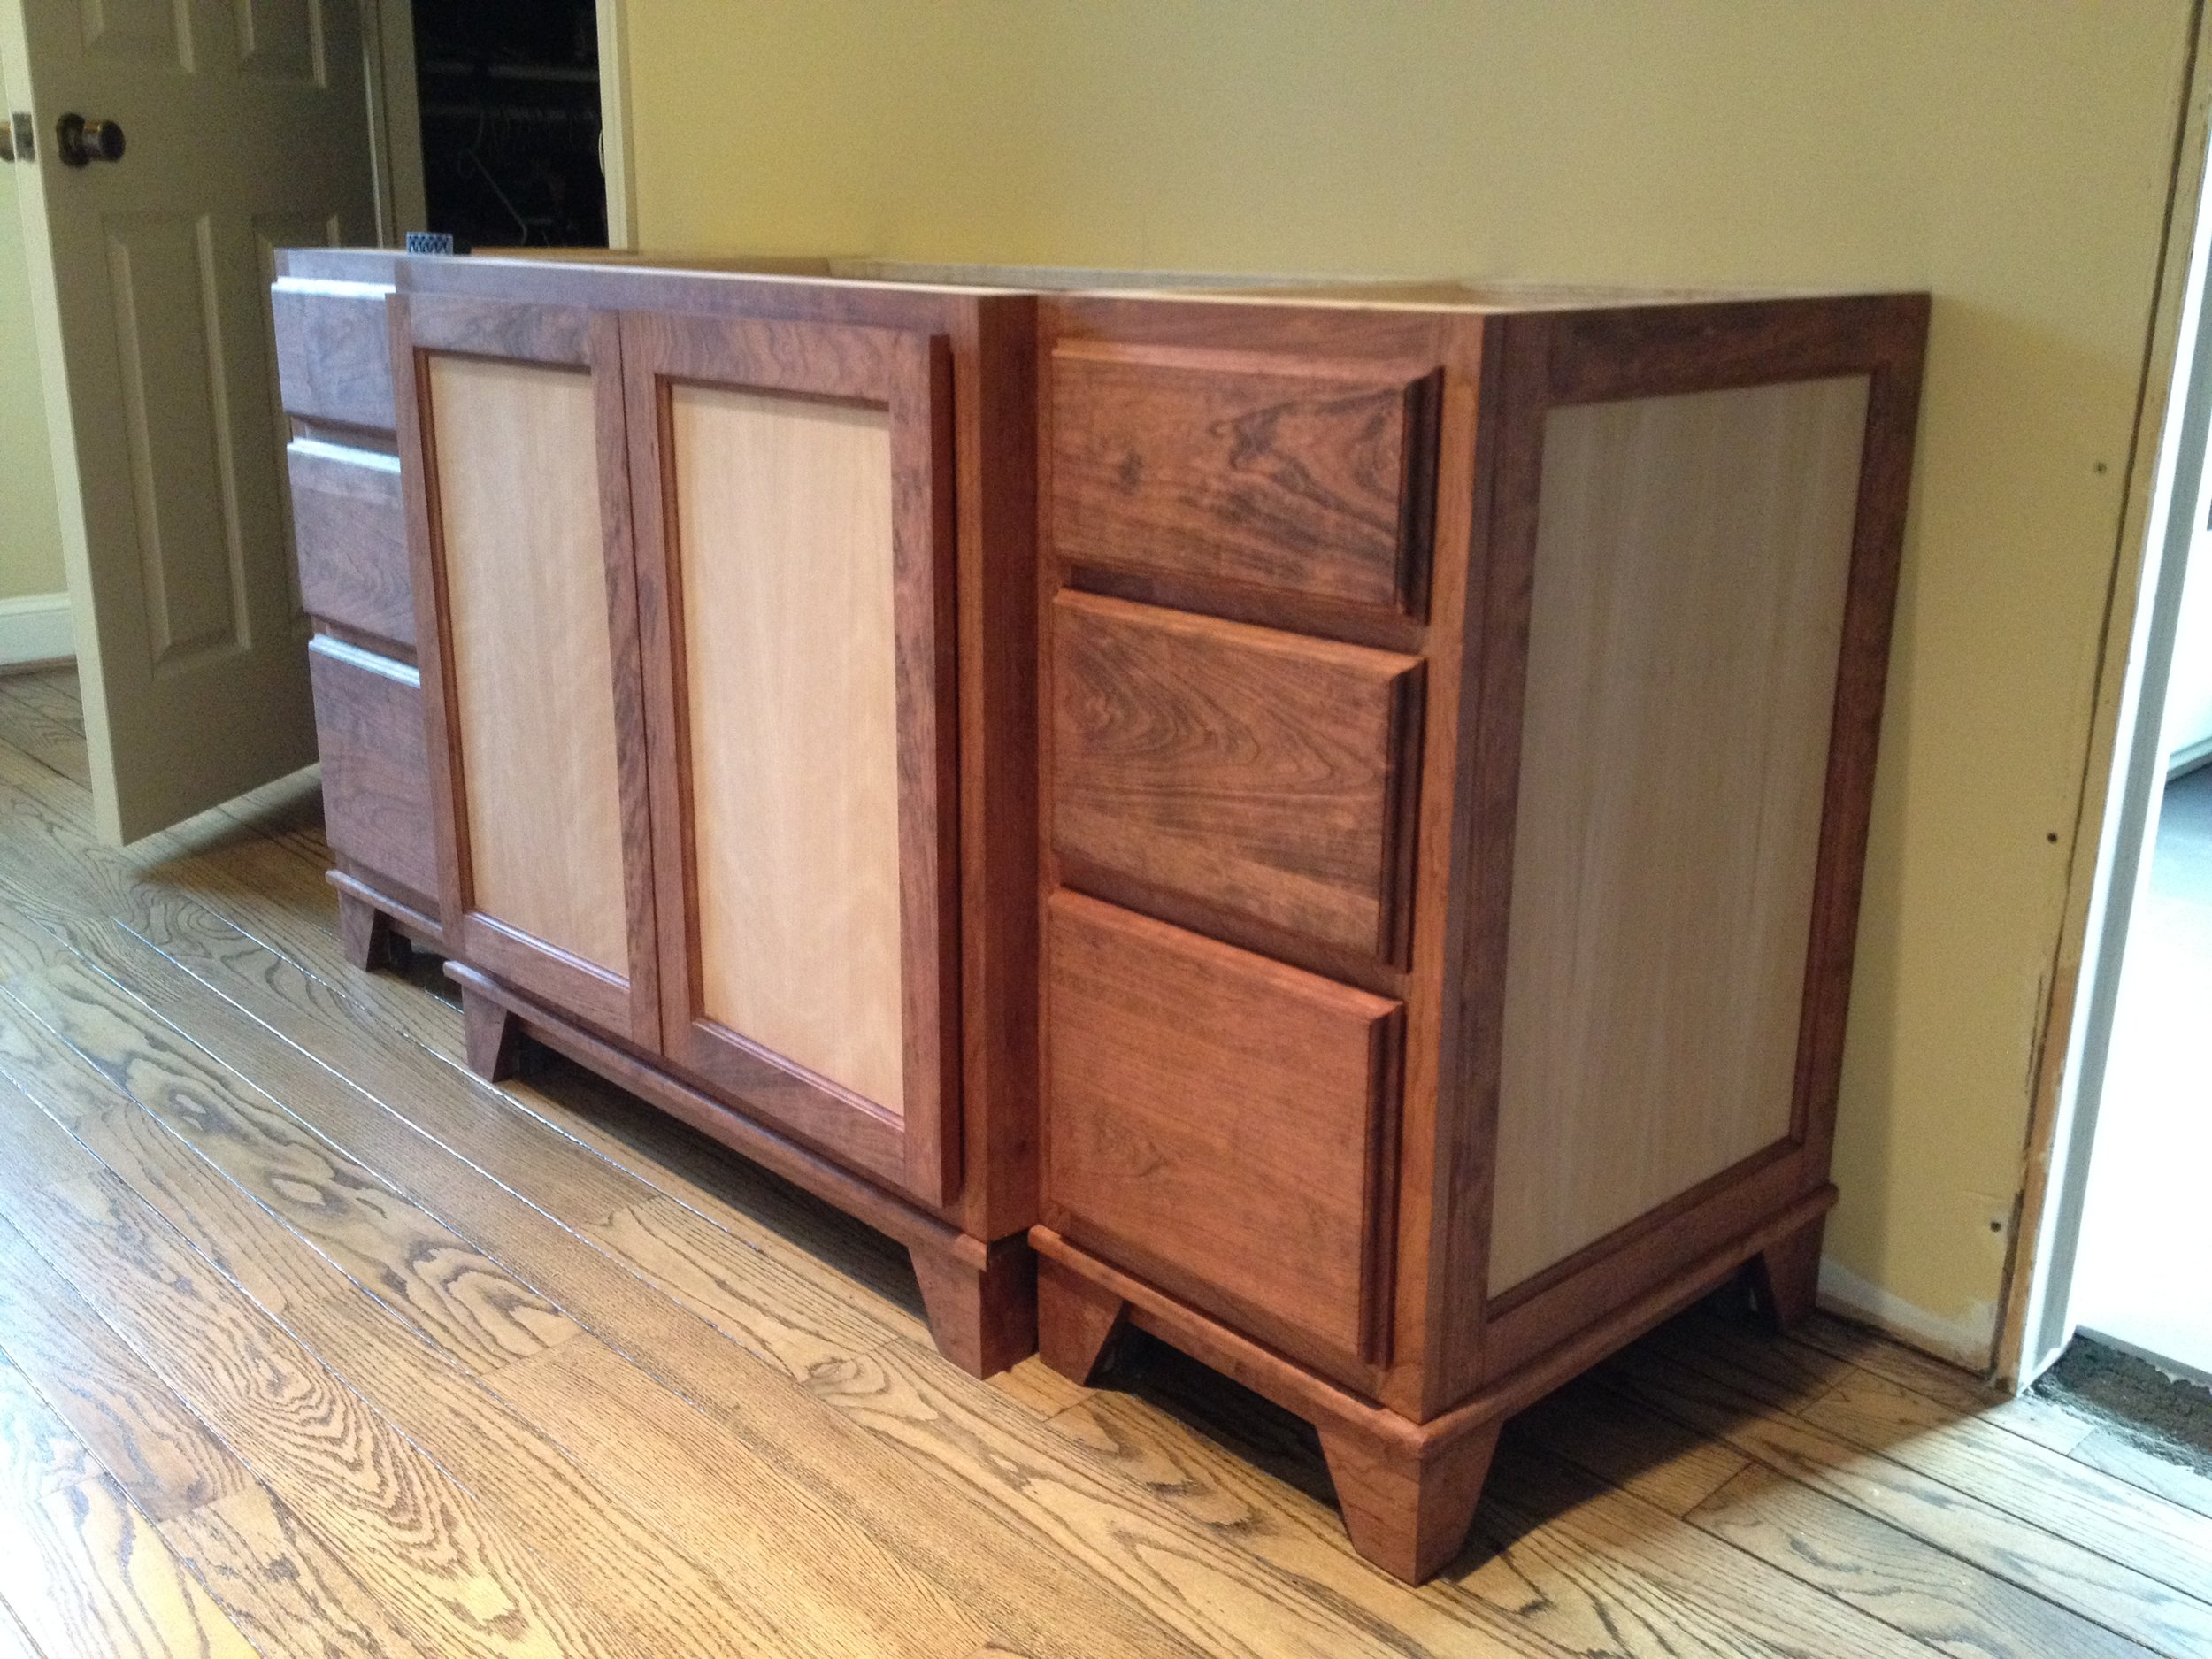 Installed in the client's home. The cabinet doors were built with the same cherry veneer to match the end panels.